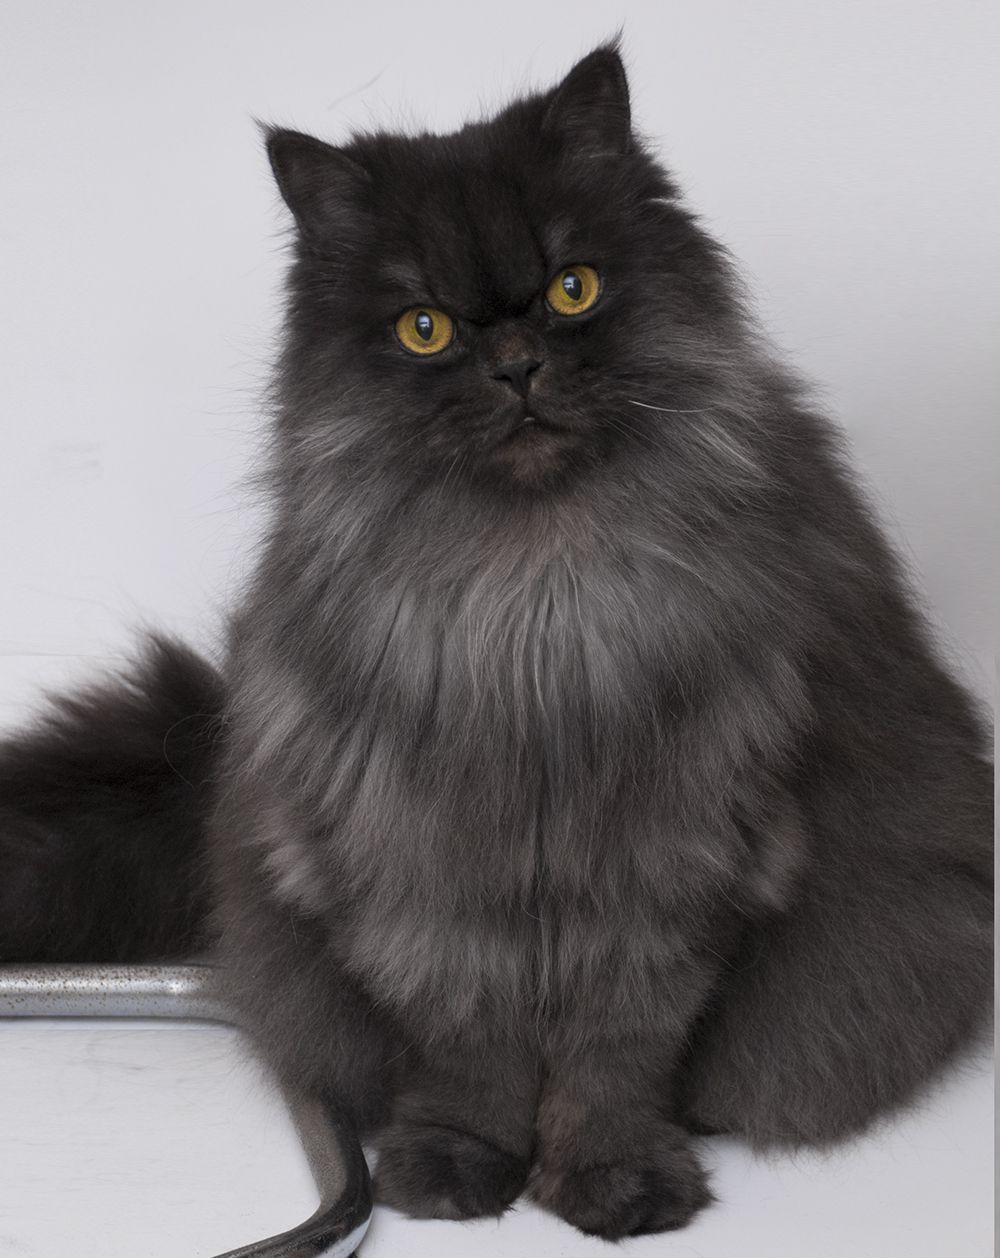 Gordi This Cat Is Pretty Fabulous Eye Color Is Kinda Freaky Pretty Kitty Though Fancy Cats Cats Pretty Cats